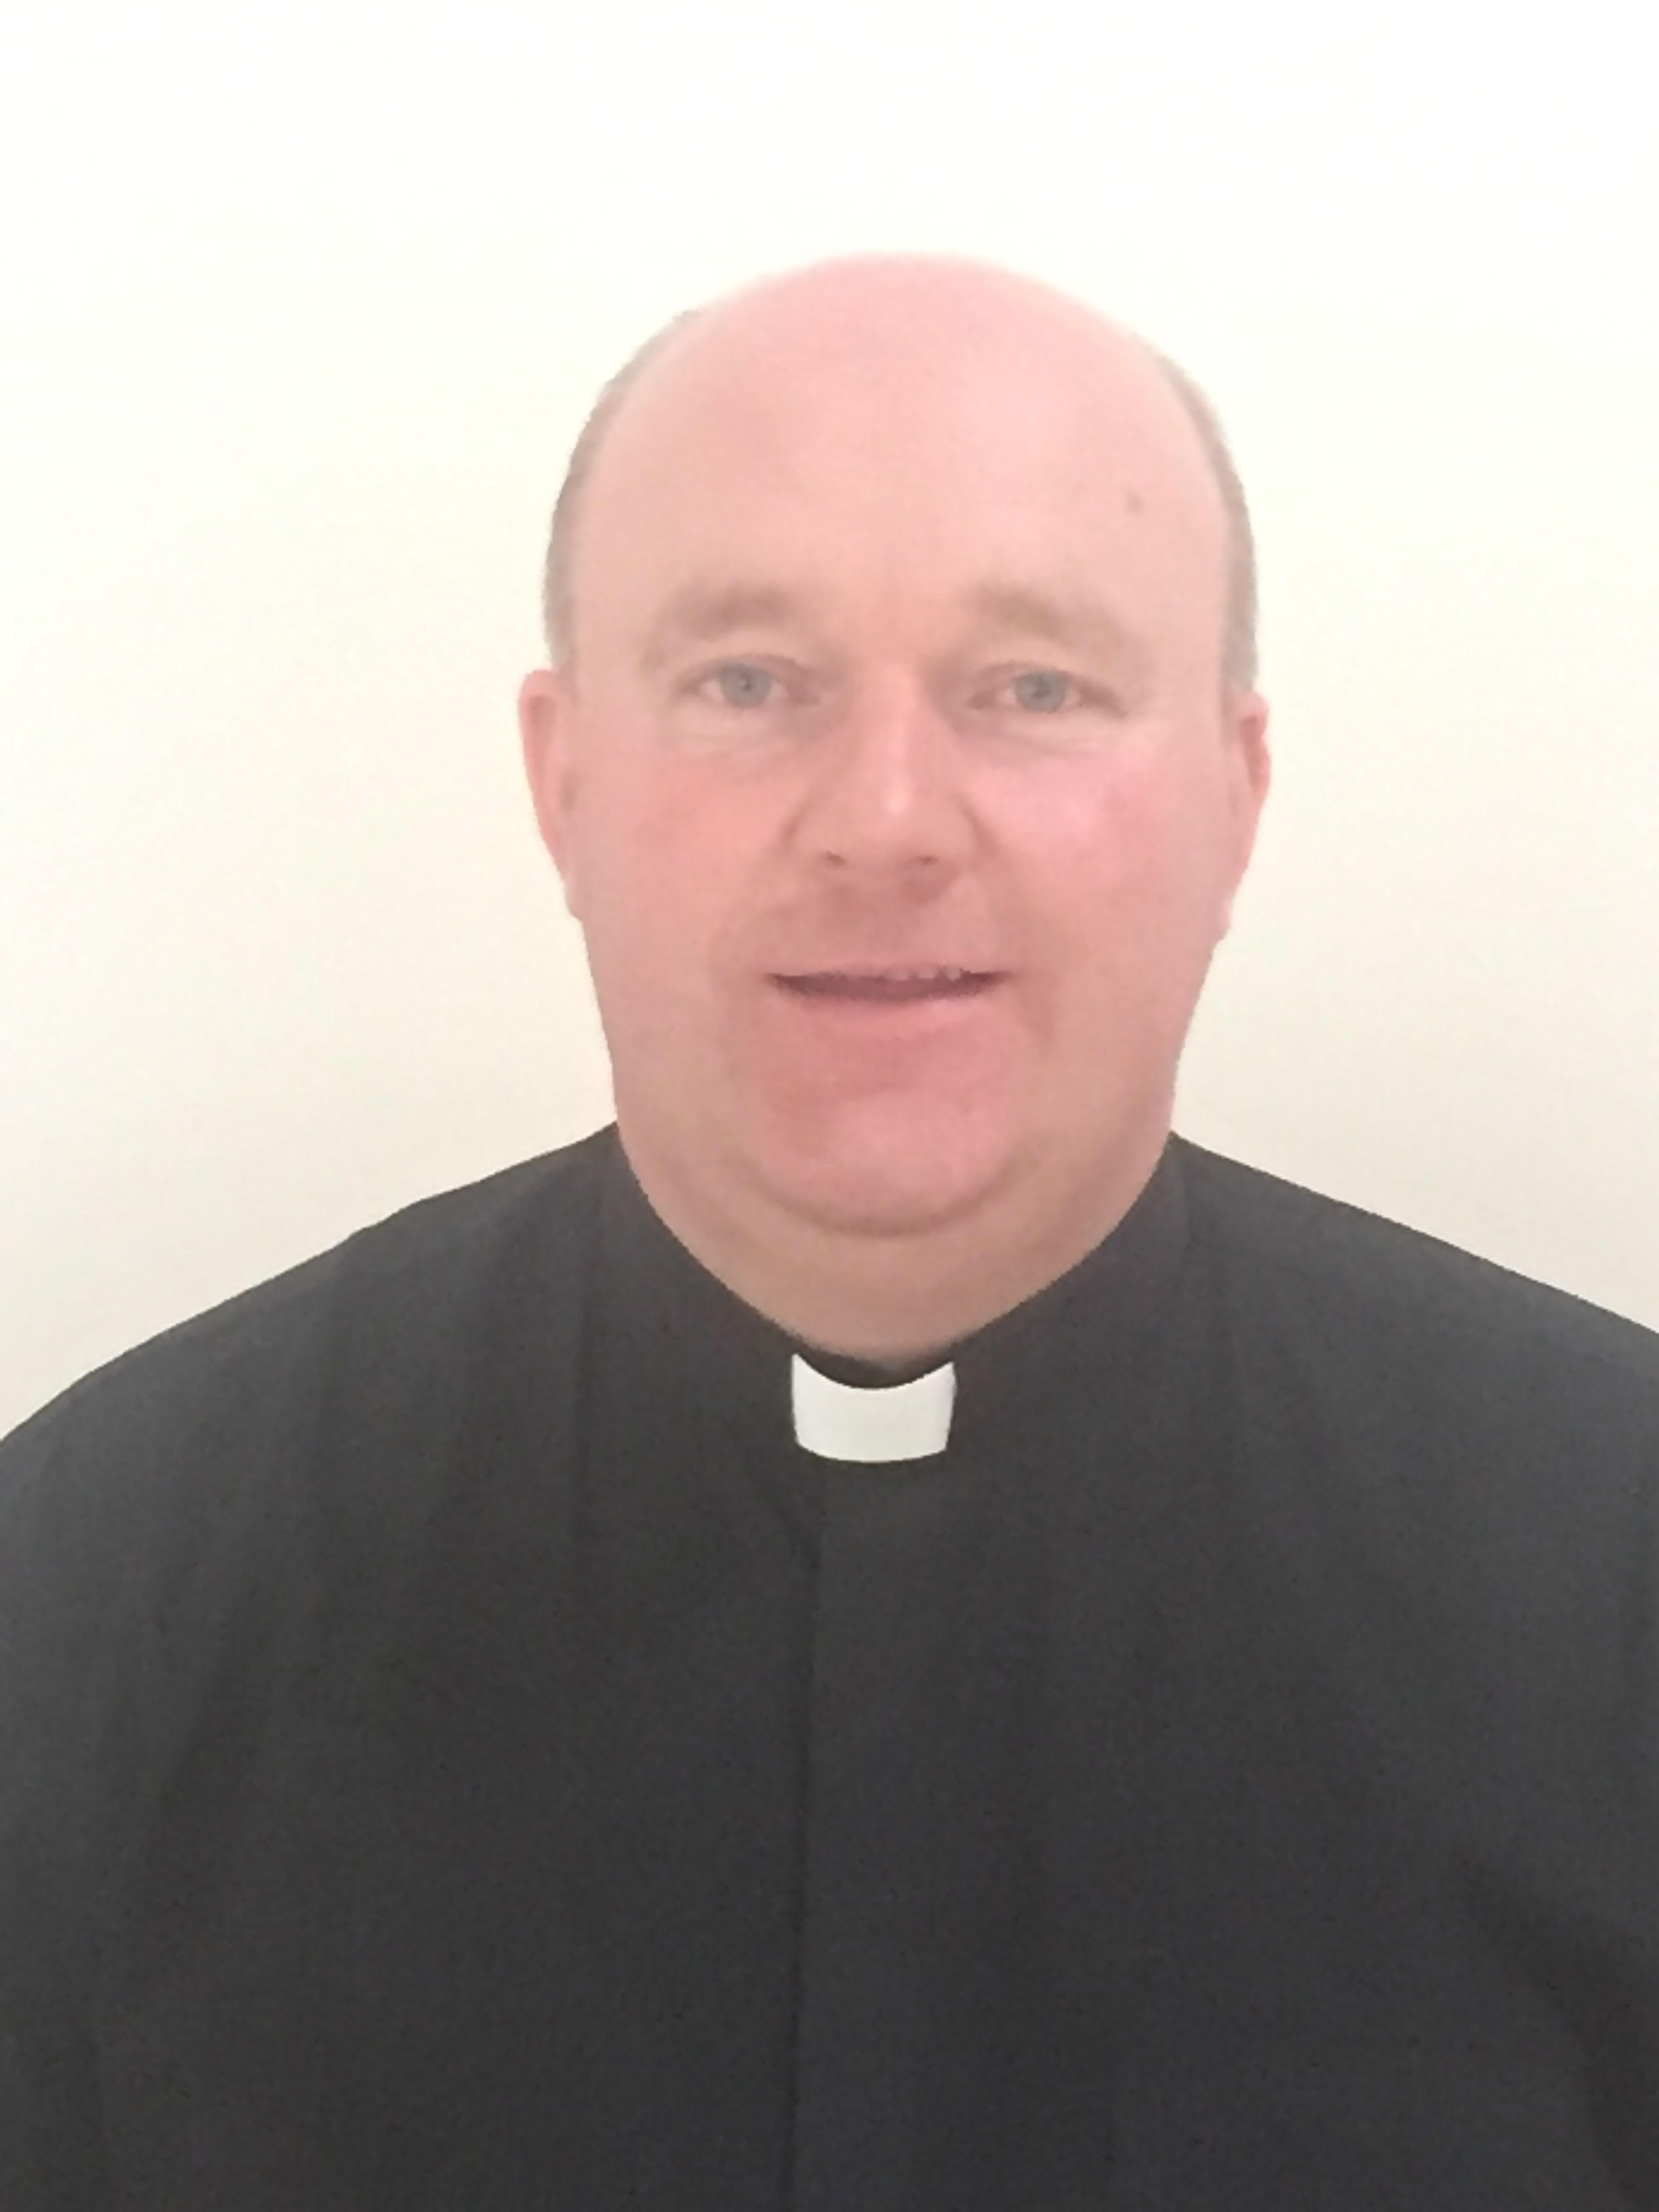 Homily for the Feast of Queen of Apostles at Knock by Rev. John Regan SAC